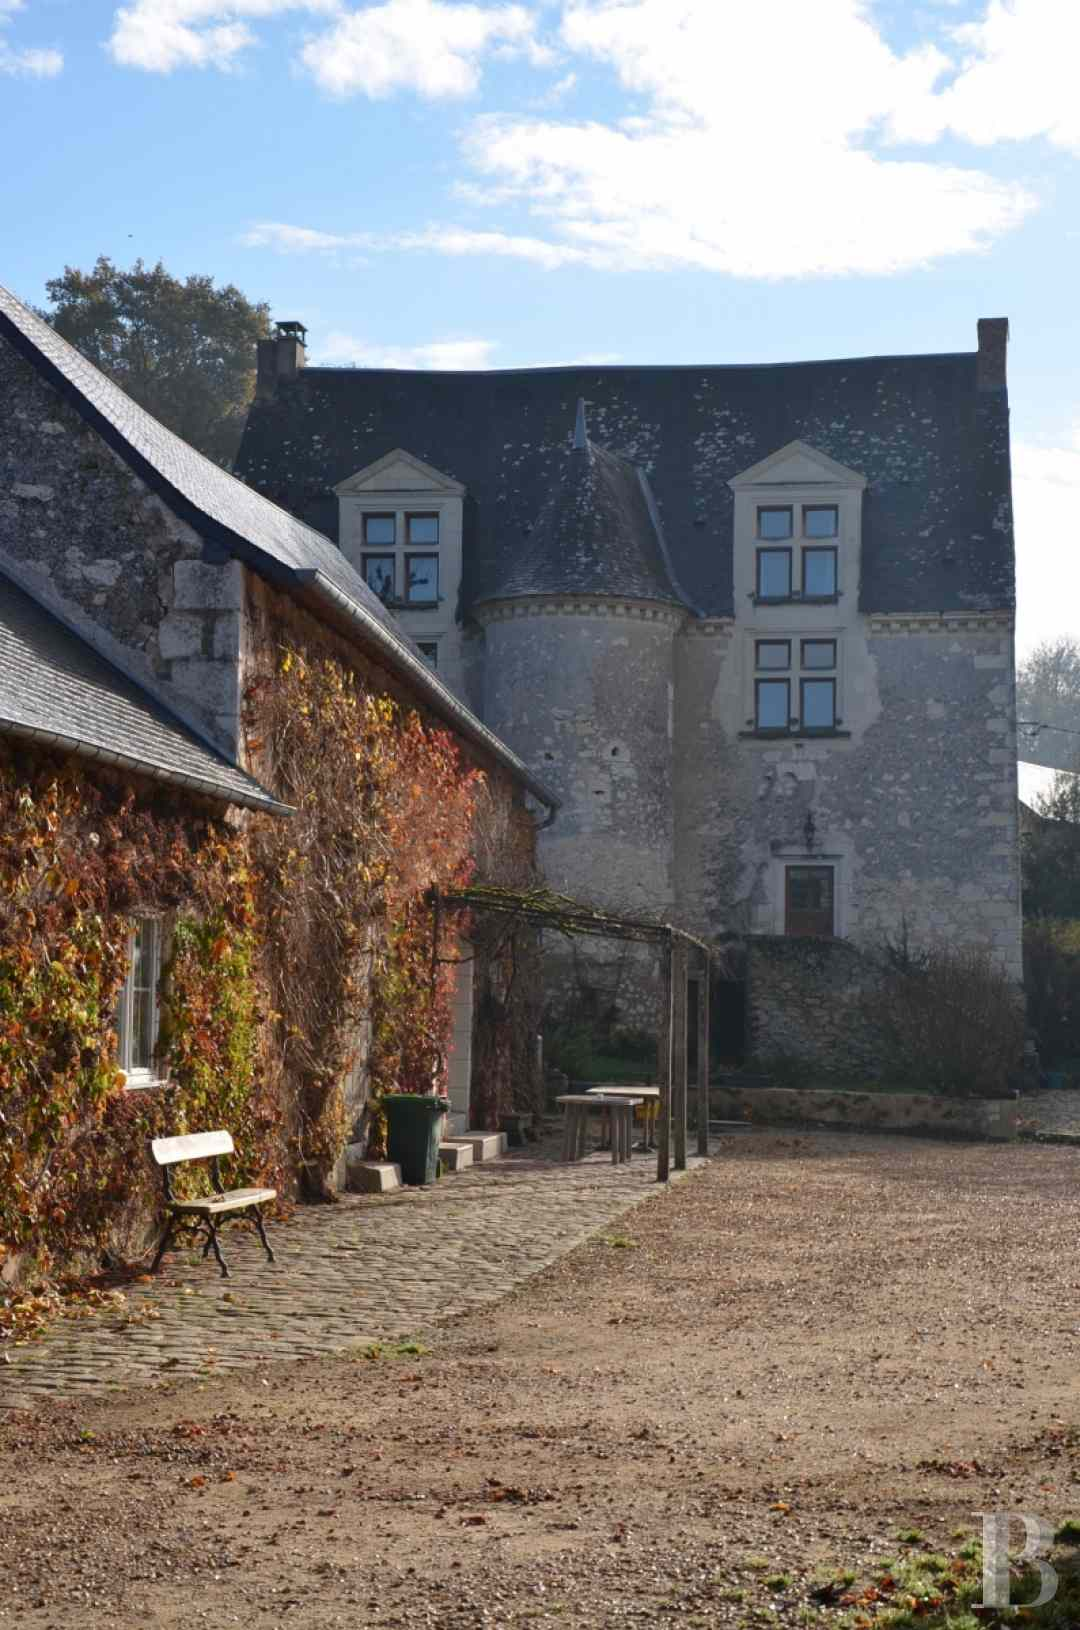 France mansions for sale pays de loire manors farms - 13 zoom